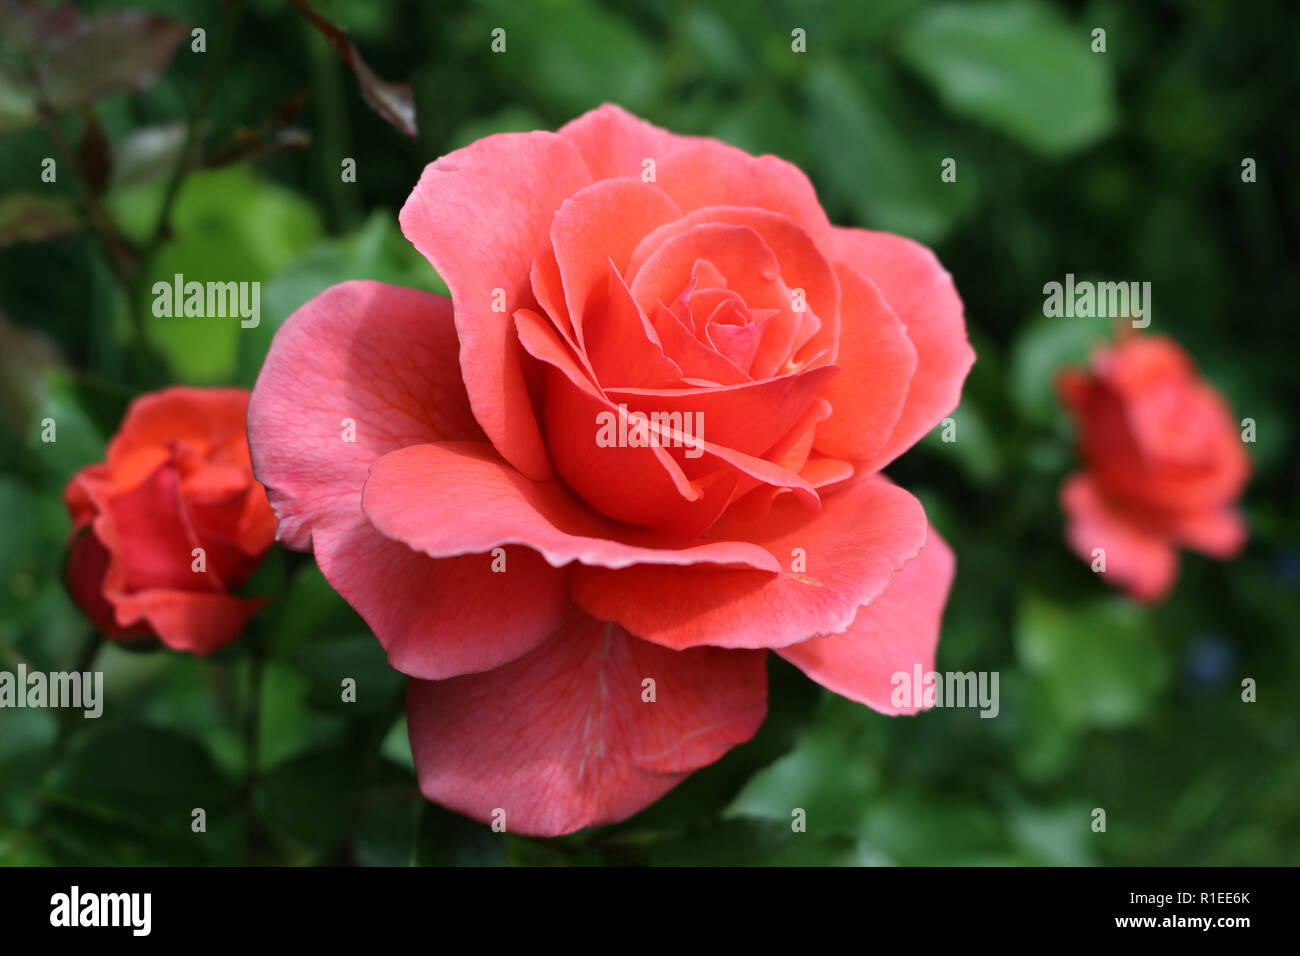 Pinky red garden roses in bloom - Stock Image